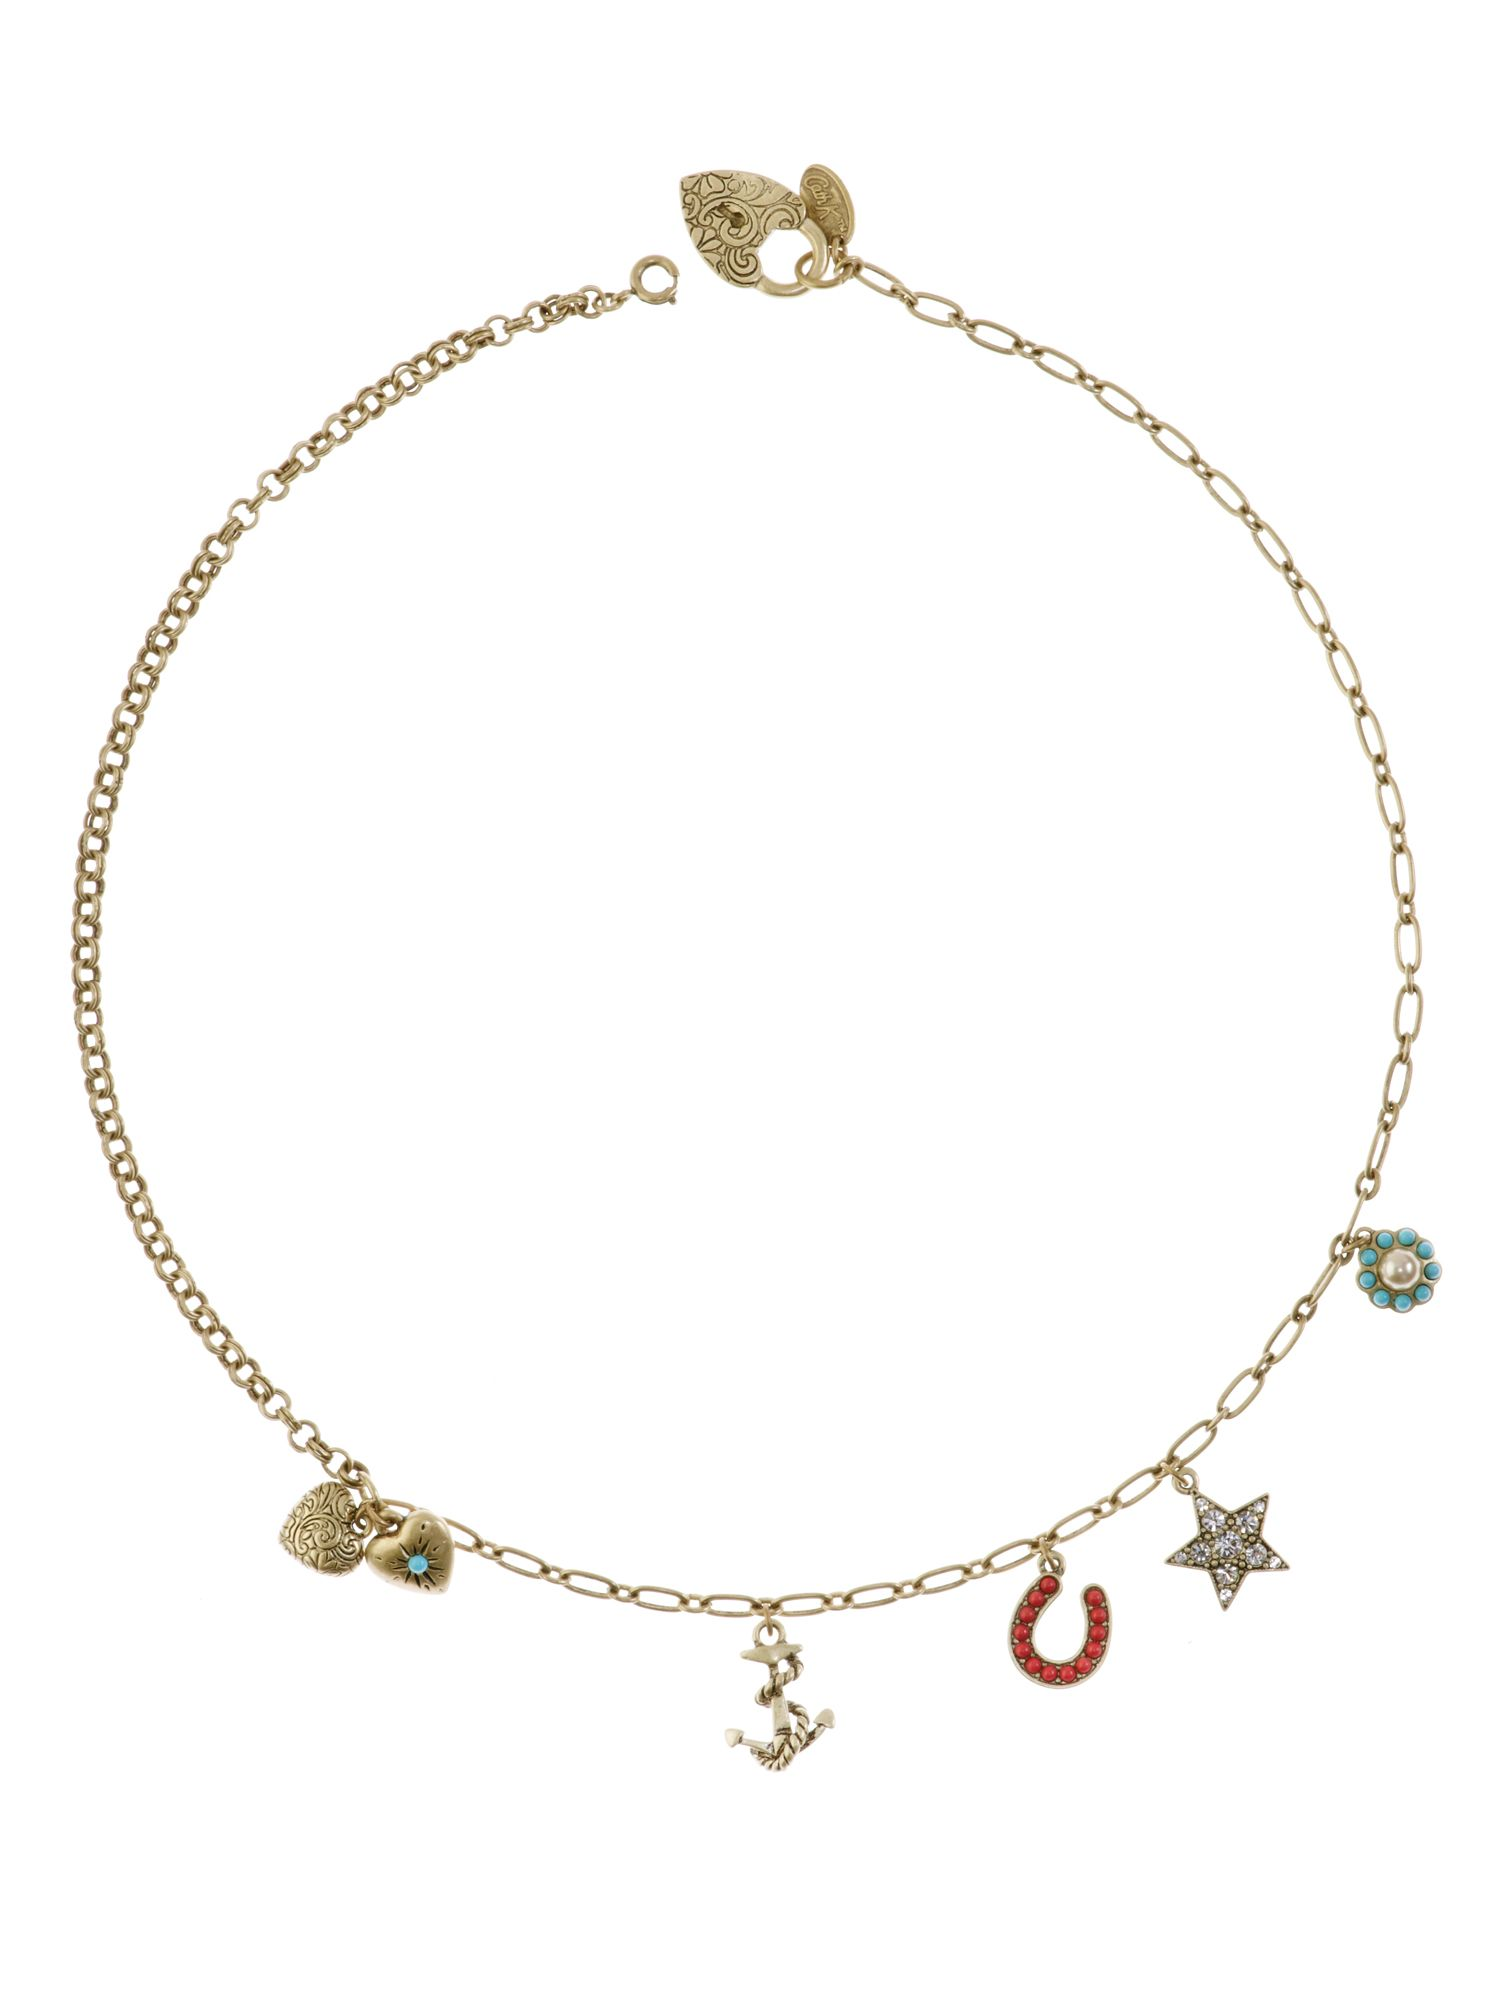 Cath Kidston Cath Kidson Vintage charm necklace